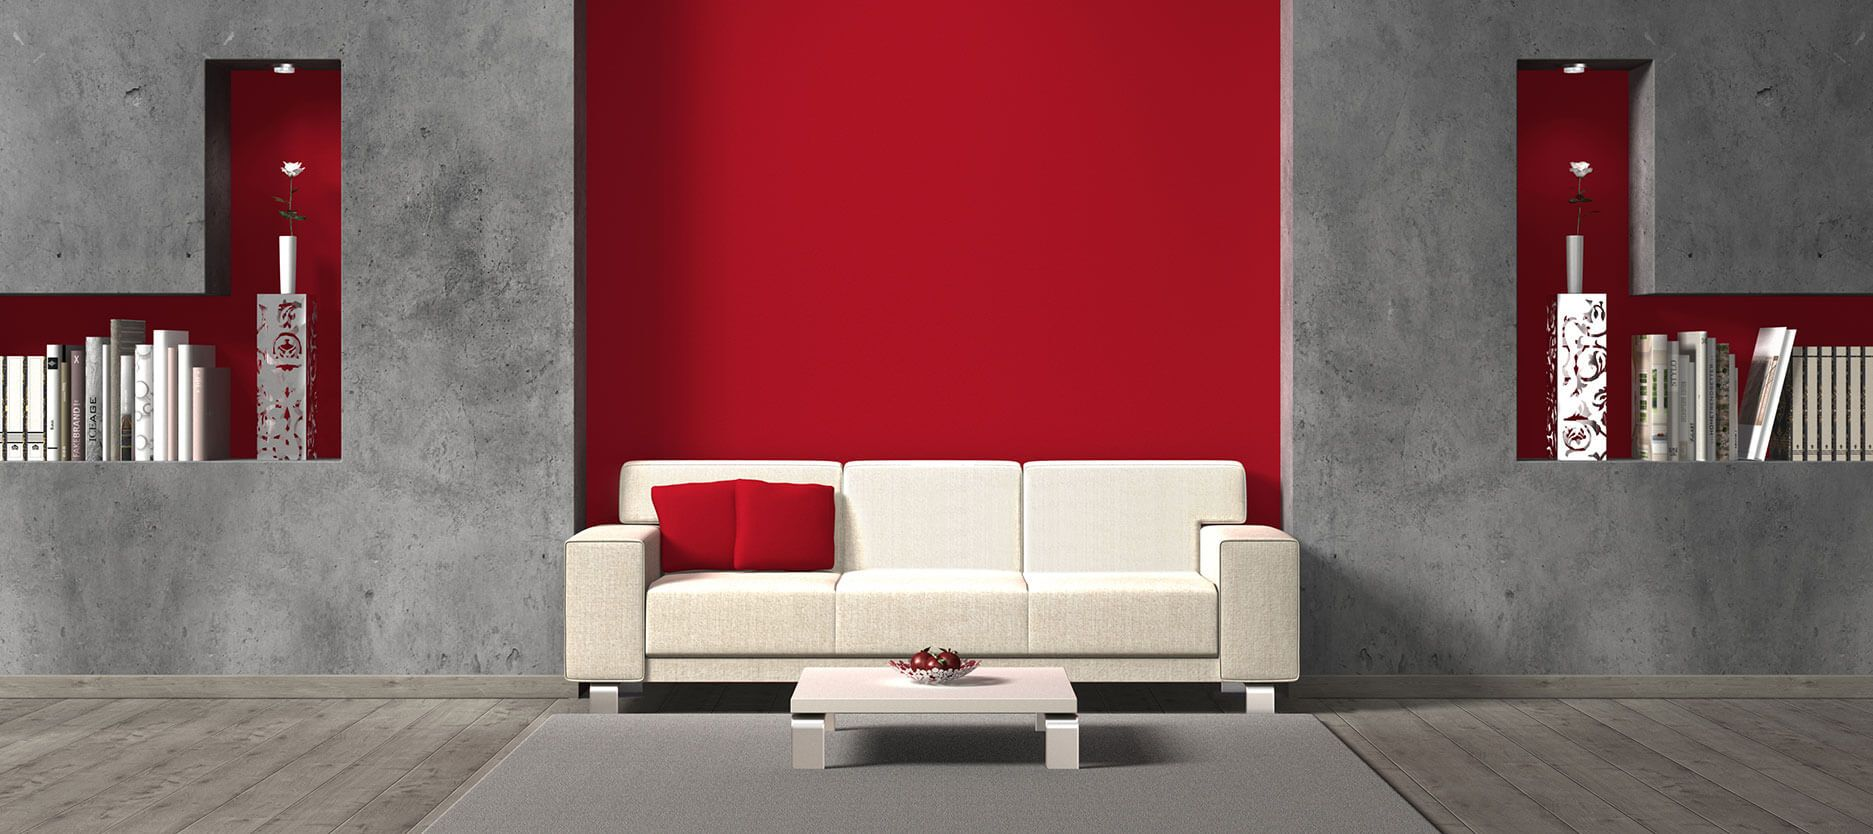 10 Red And Grey Living Room Ideas 2021 Very Lovely Living Room Grey Living Room Paint Wall Color Combination